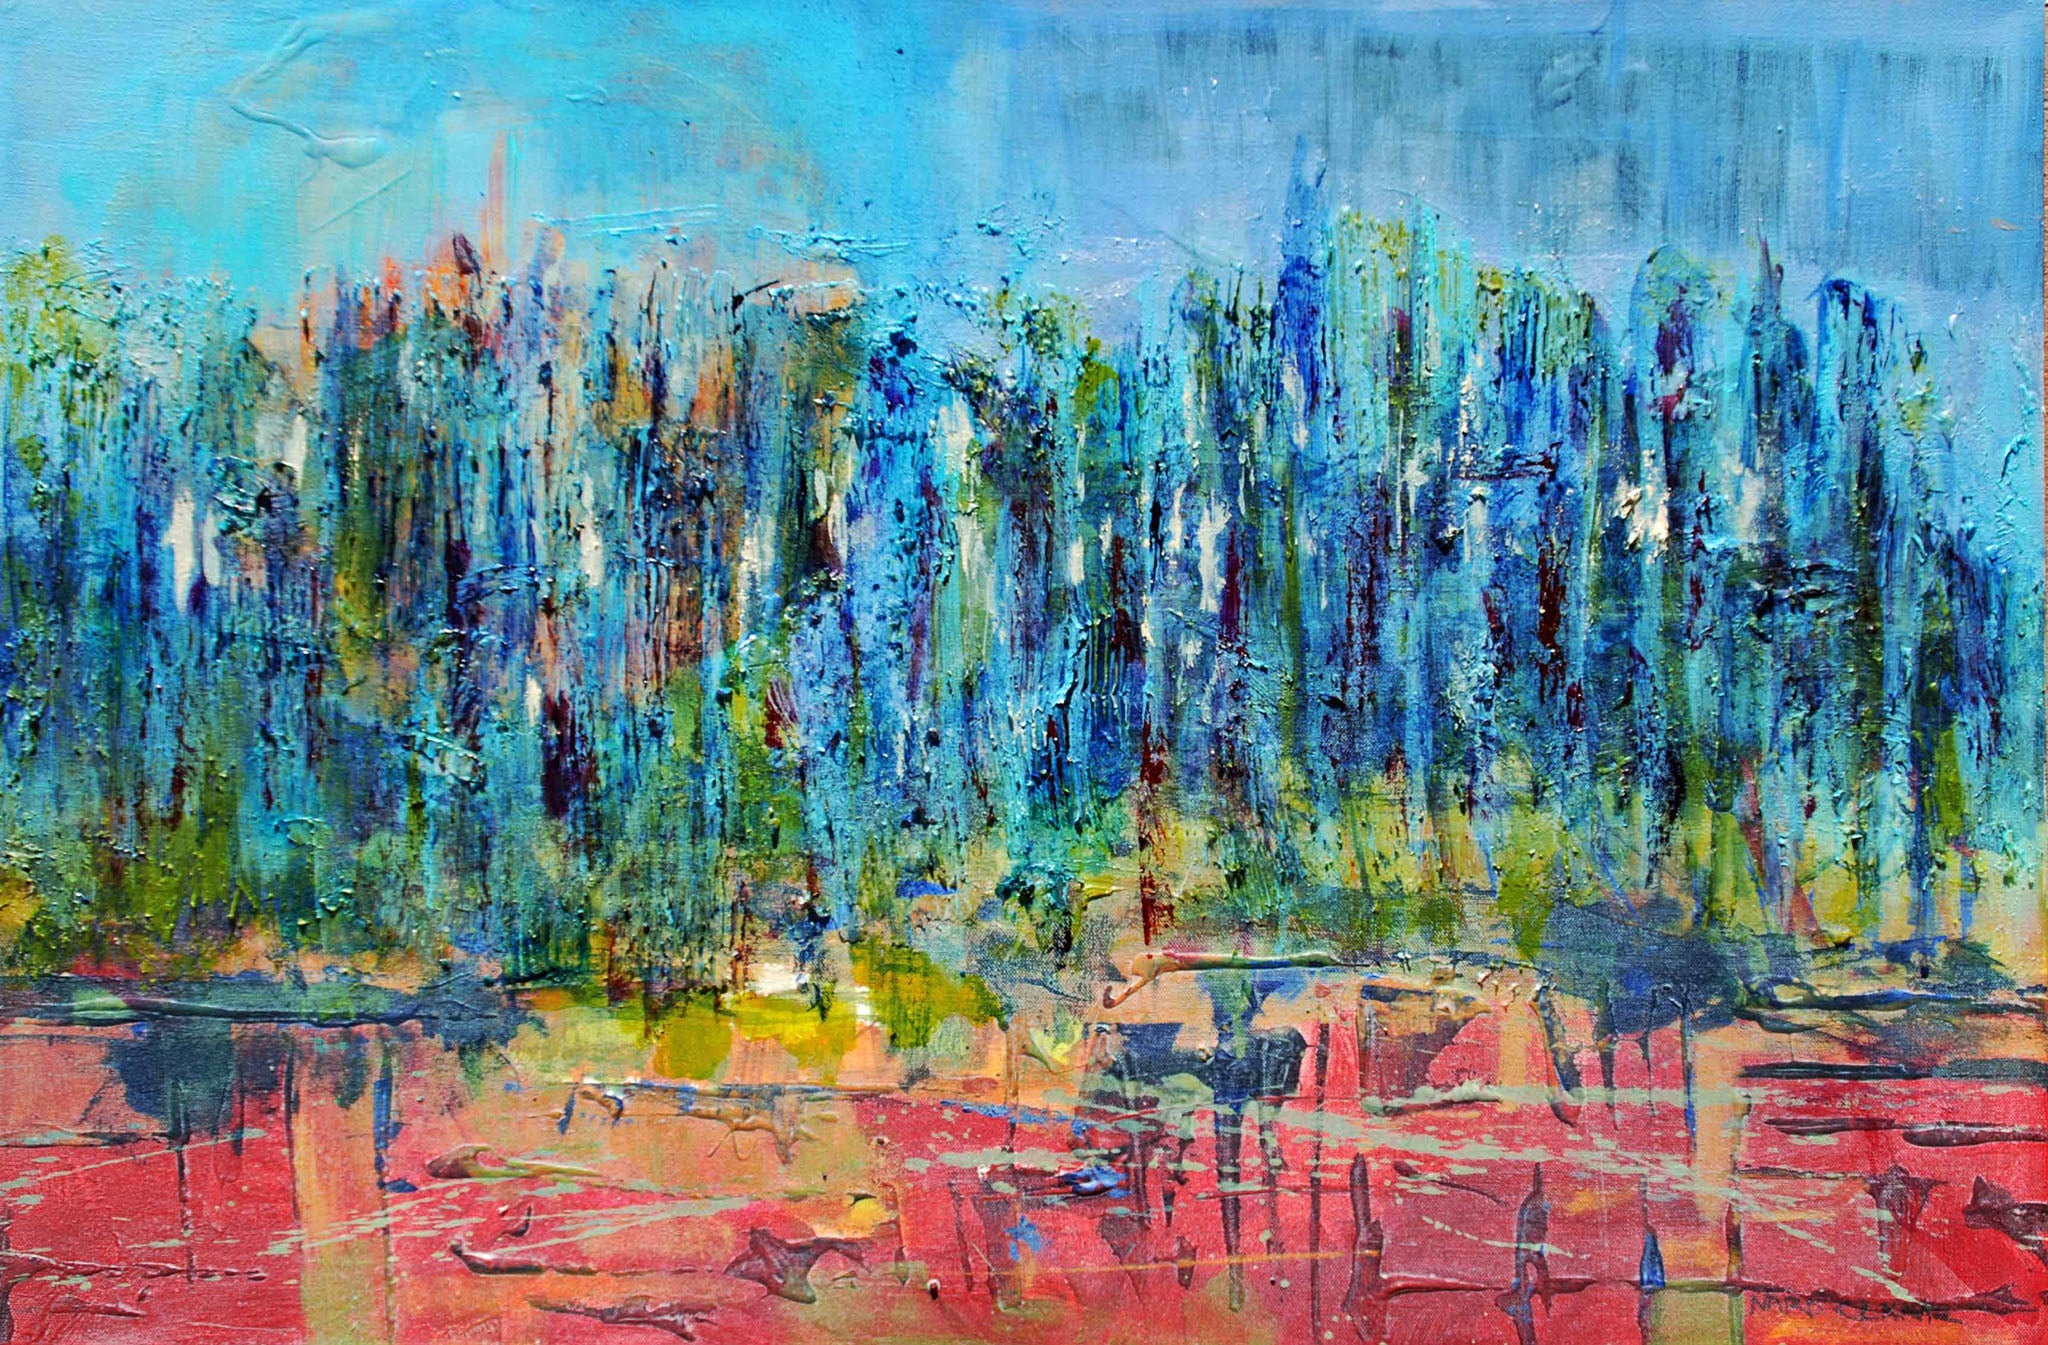 Pond - mixed media/ acrylic painting by Nard Claar